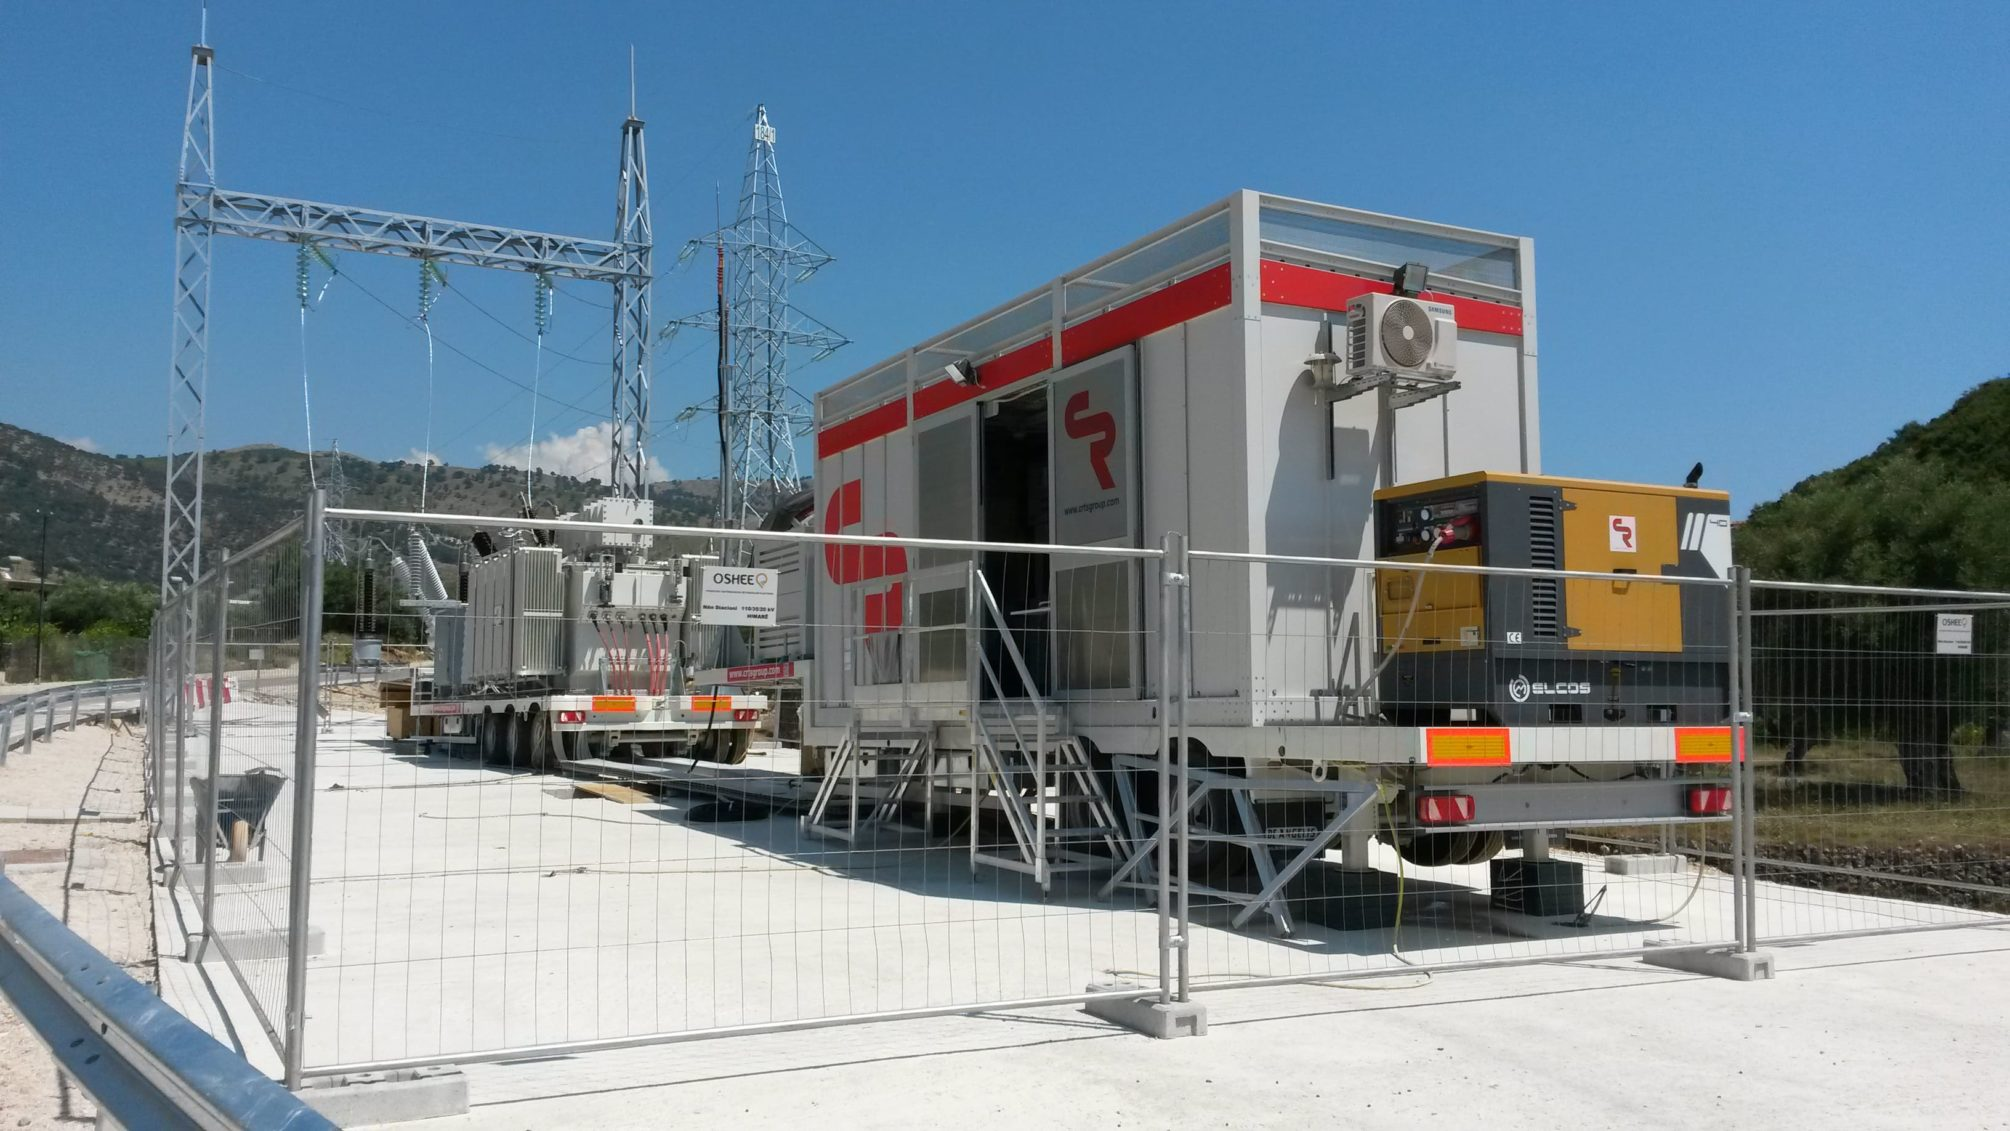 Mobile substation in Albania, Europe